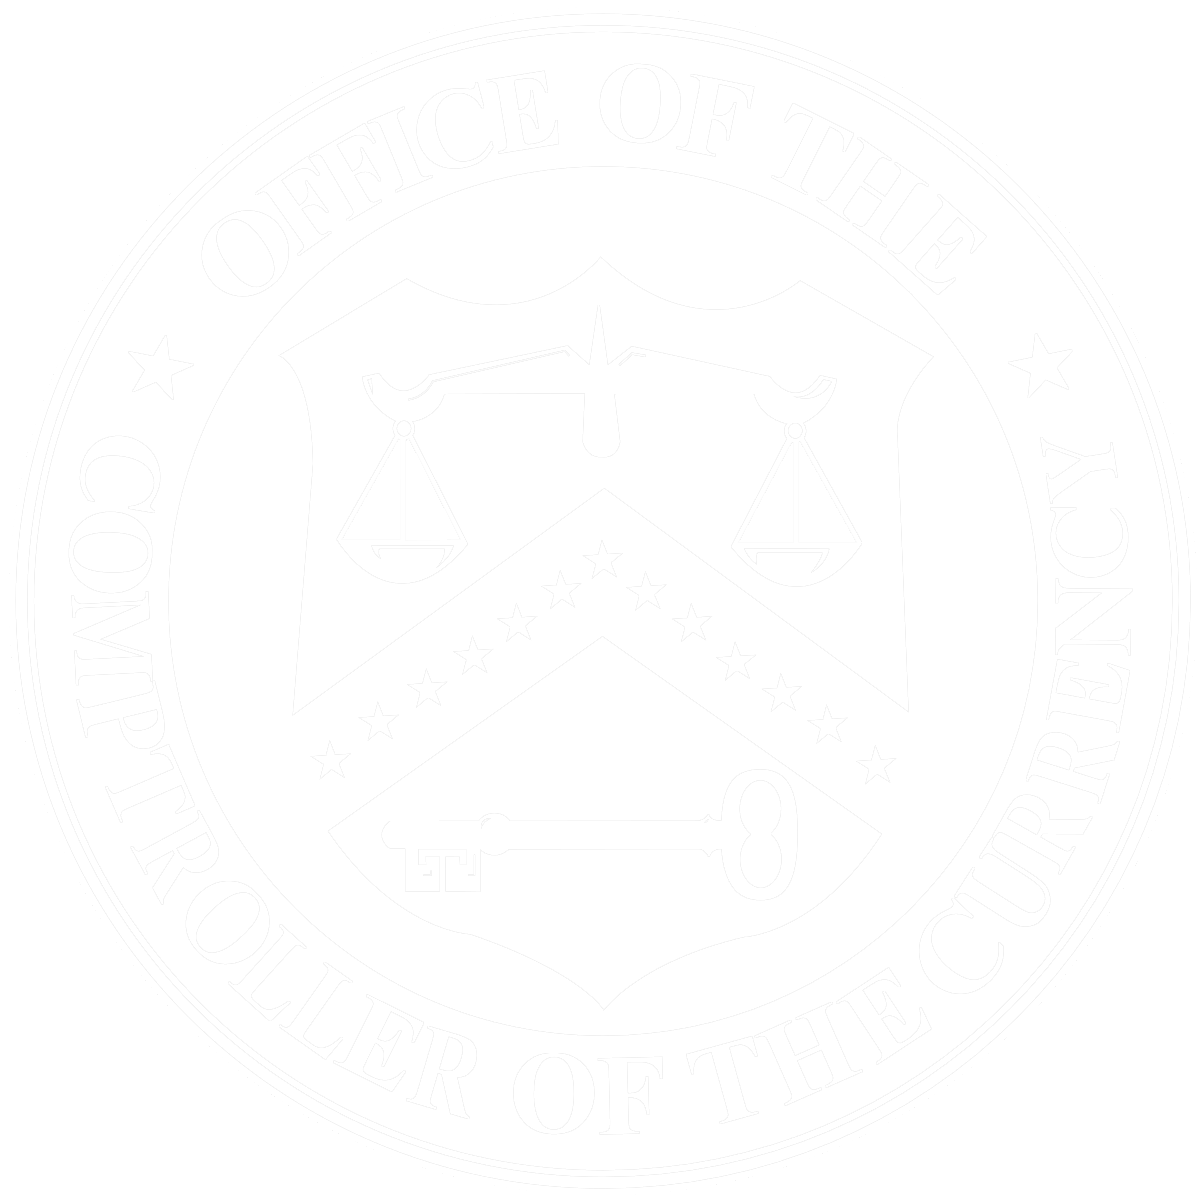 1200px-Seal_of_the_Office_of_the_Comptroller_of_the_Currency white.png